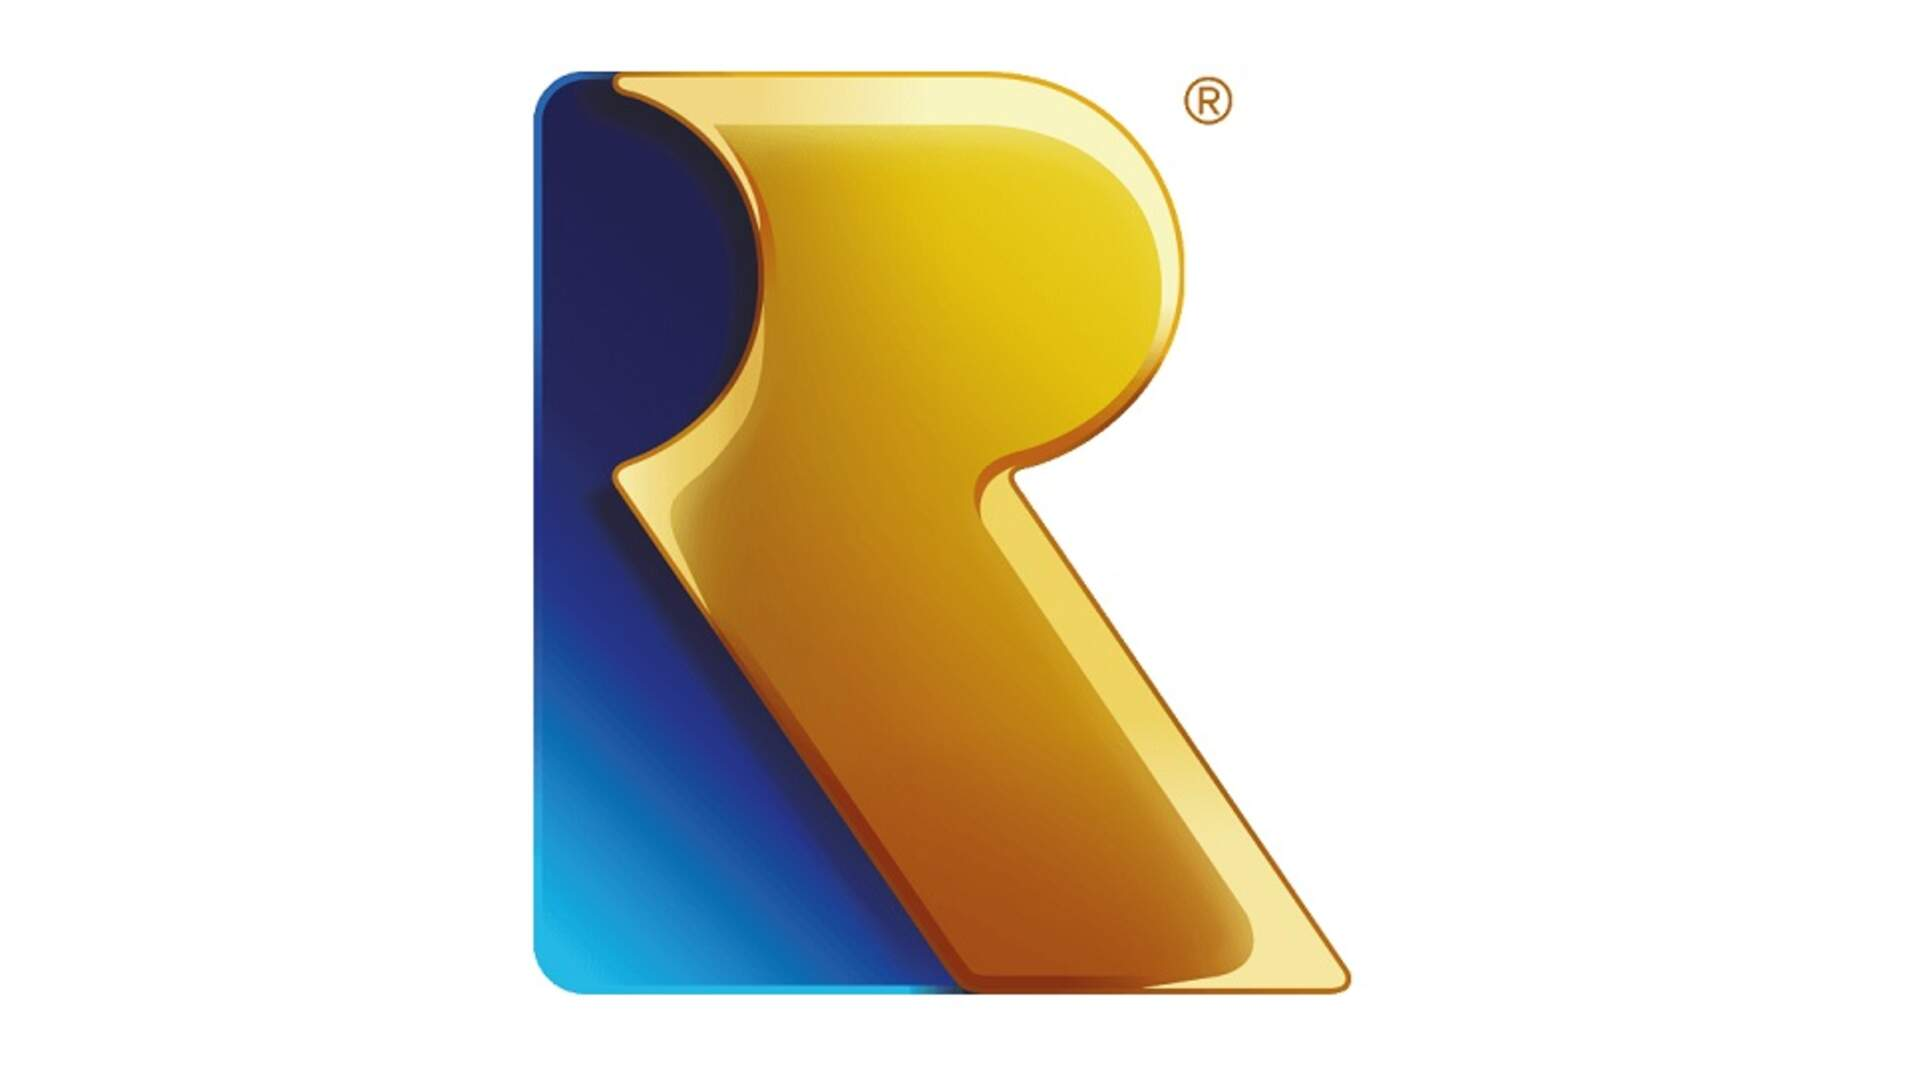 Rare's Logo is Based on a Roll of Golden Toilet Paper